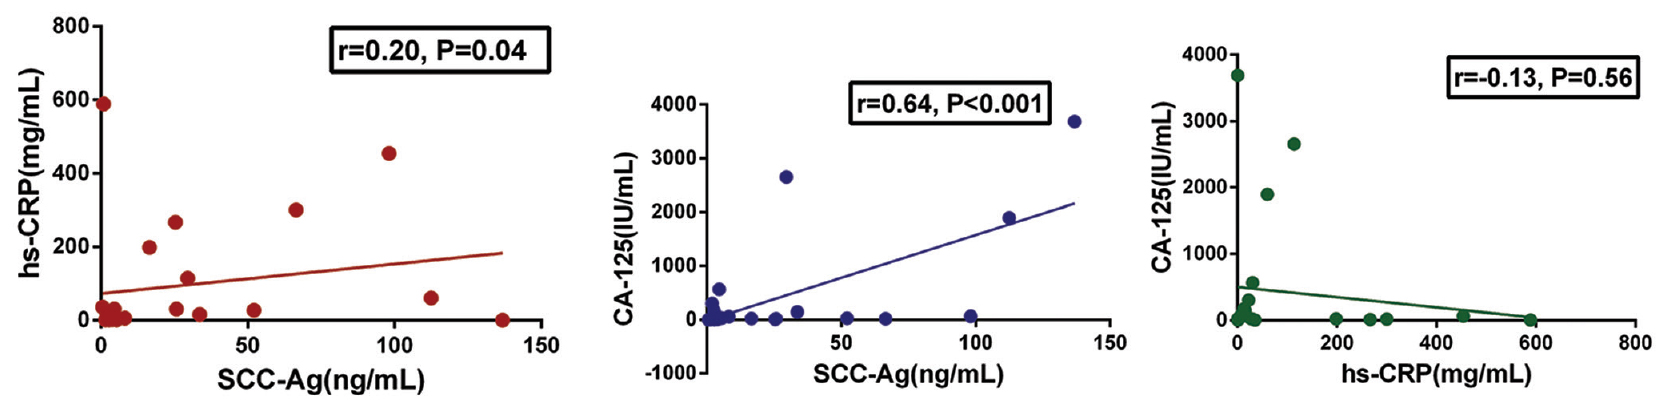 Serum Expression Level Of Squamous Cell Carcinoma Antigen Highly Sensitive C Reactive Protein And Ca 125 As Potential Biomarkers For Recurrence Of Cervical Cancer Guo S Yang B Liu H Li Y Li S